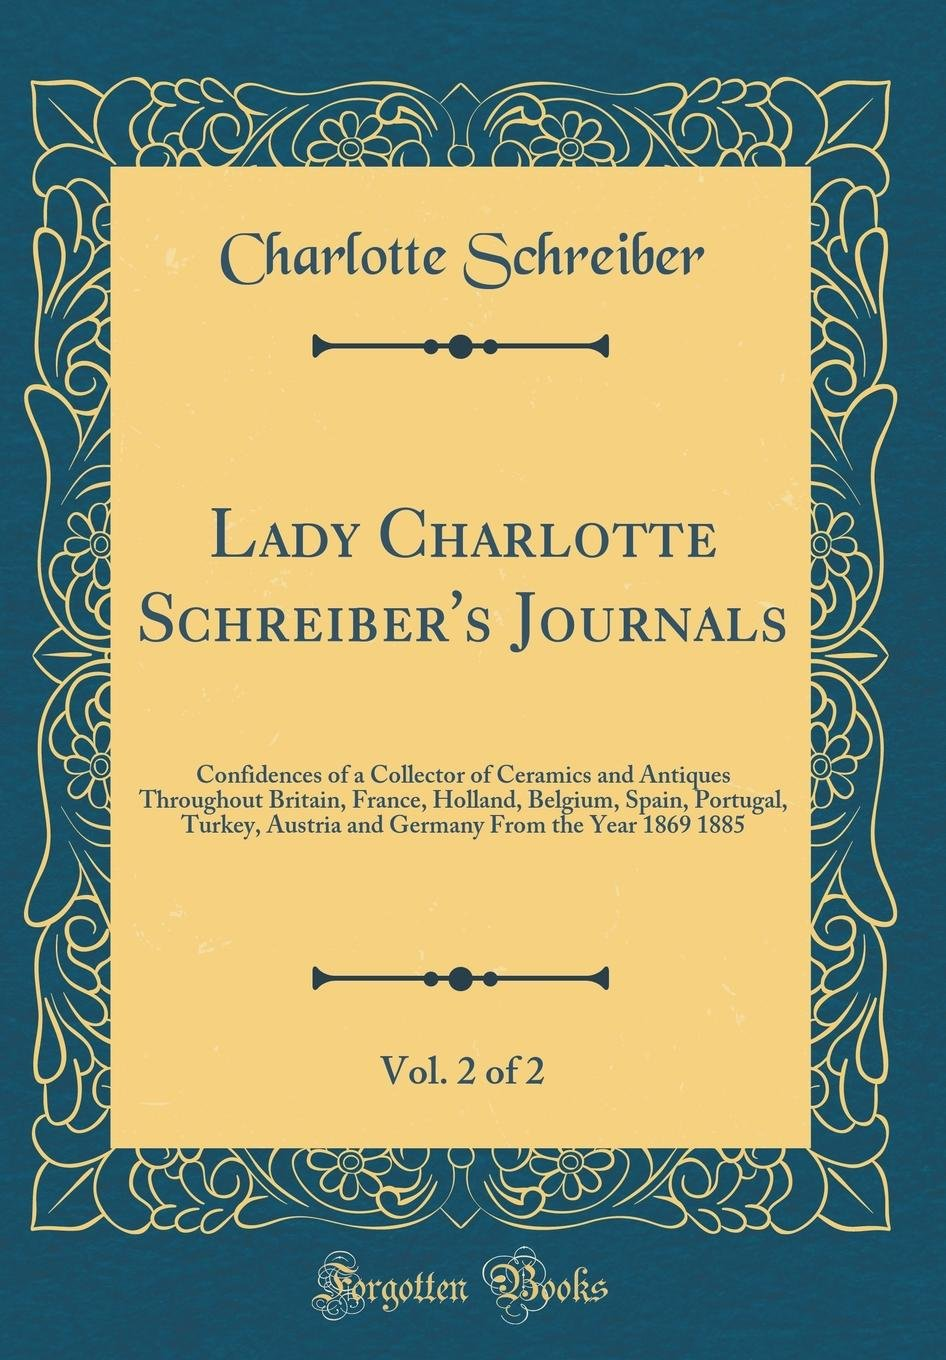 Download Lady Charlotte Schreiber's Journals, Vol. 2 of 2: Confidences of a Collector of Ceramics and Antiques Throughout Britain, France, Holland, Belgium, ... from the Year 1869 1885 (Classic Reprint) ebook